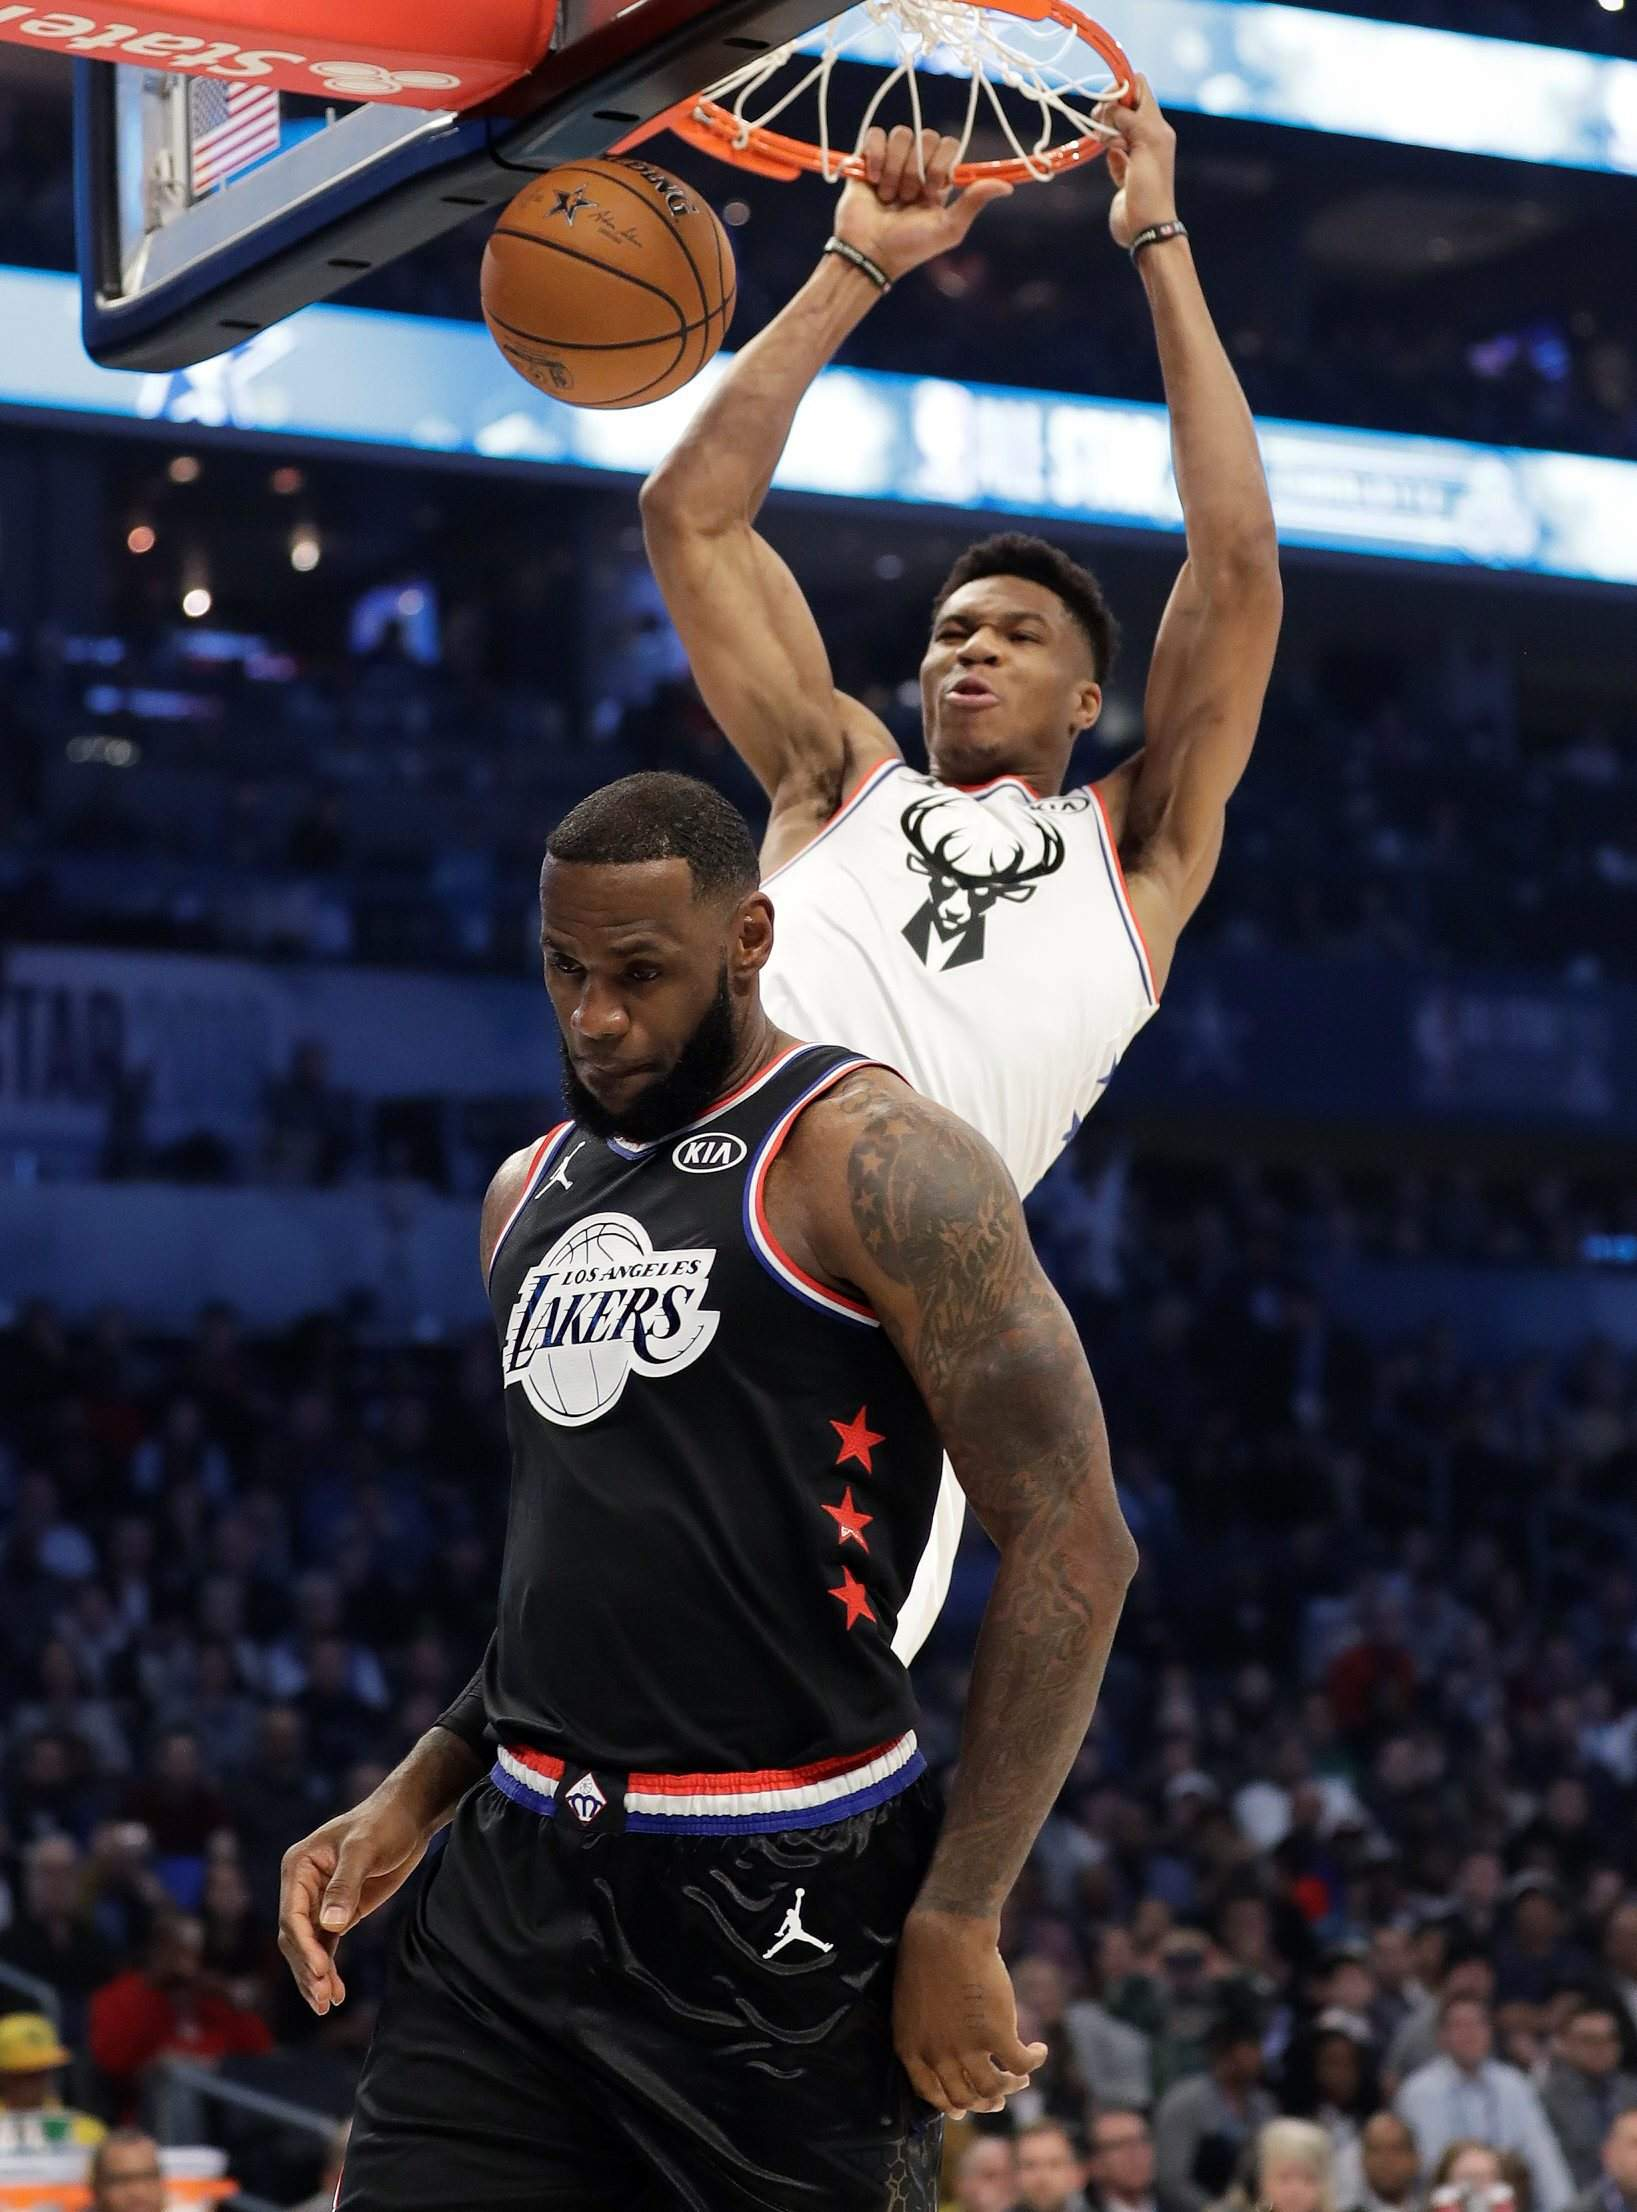 66a7060acab Team Giannis' Giannis Antetokounmpo, of the Milwaukee Bucks, dunks the ball  against Team LeBron's LeBron James, of the Cleveland Cavaliers, during the  first ...